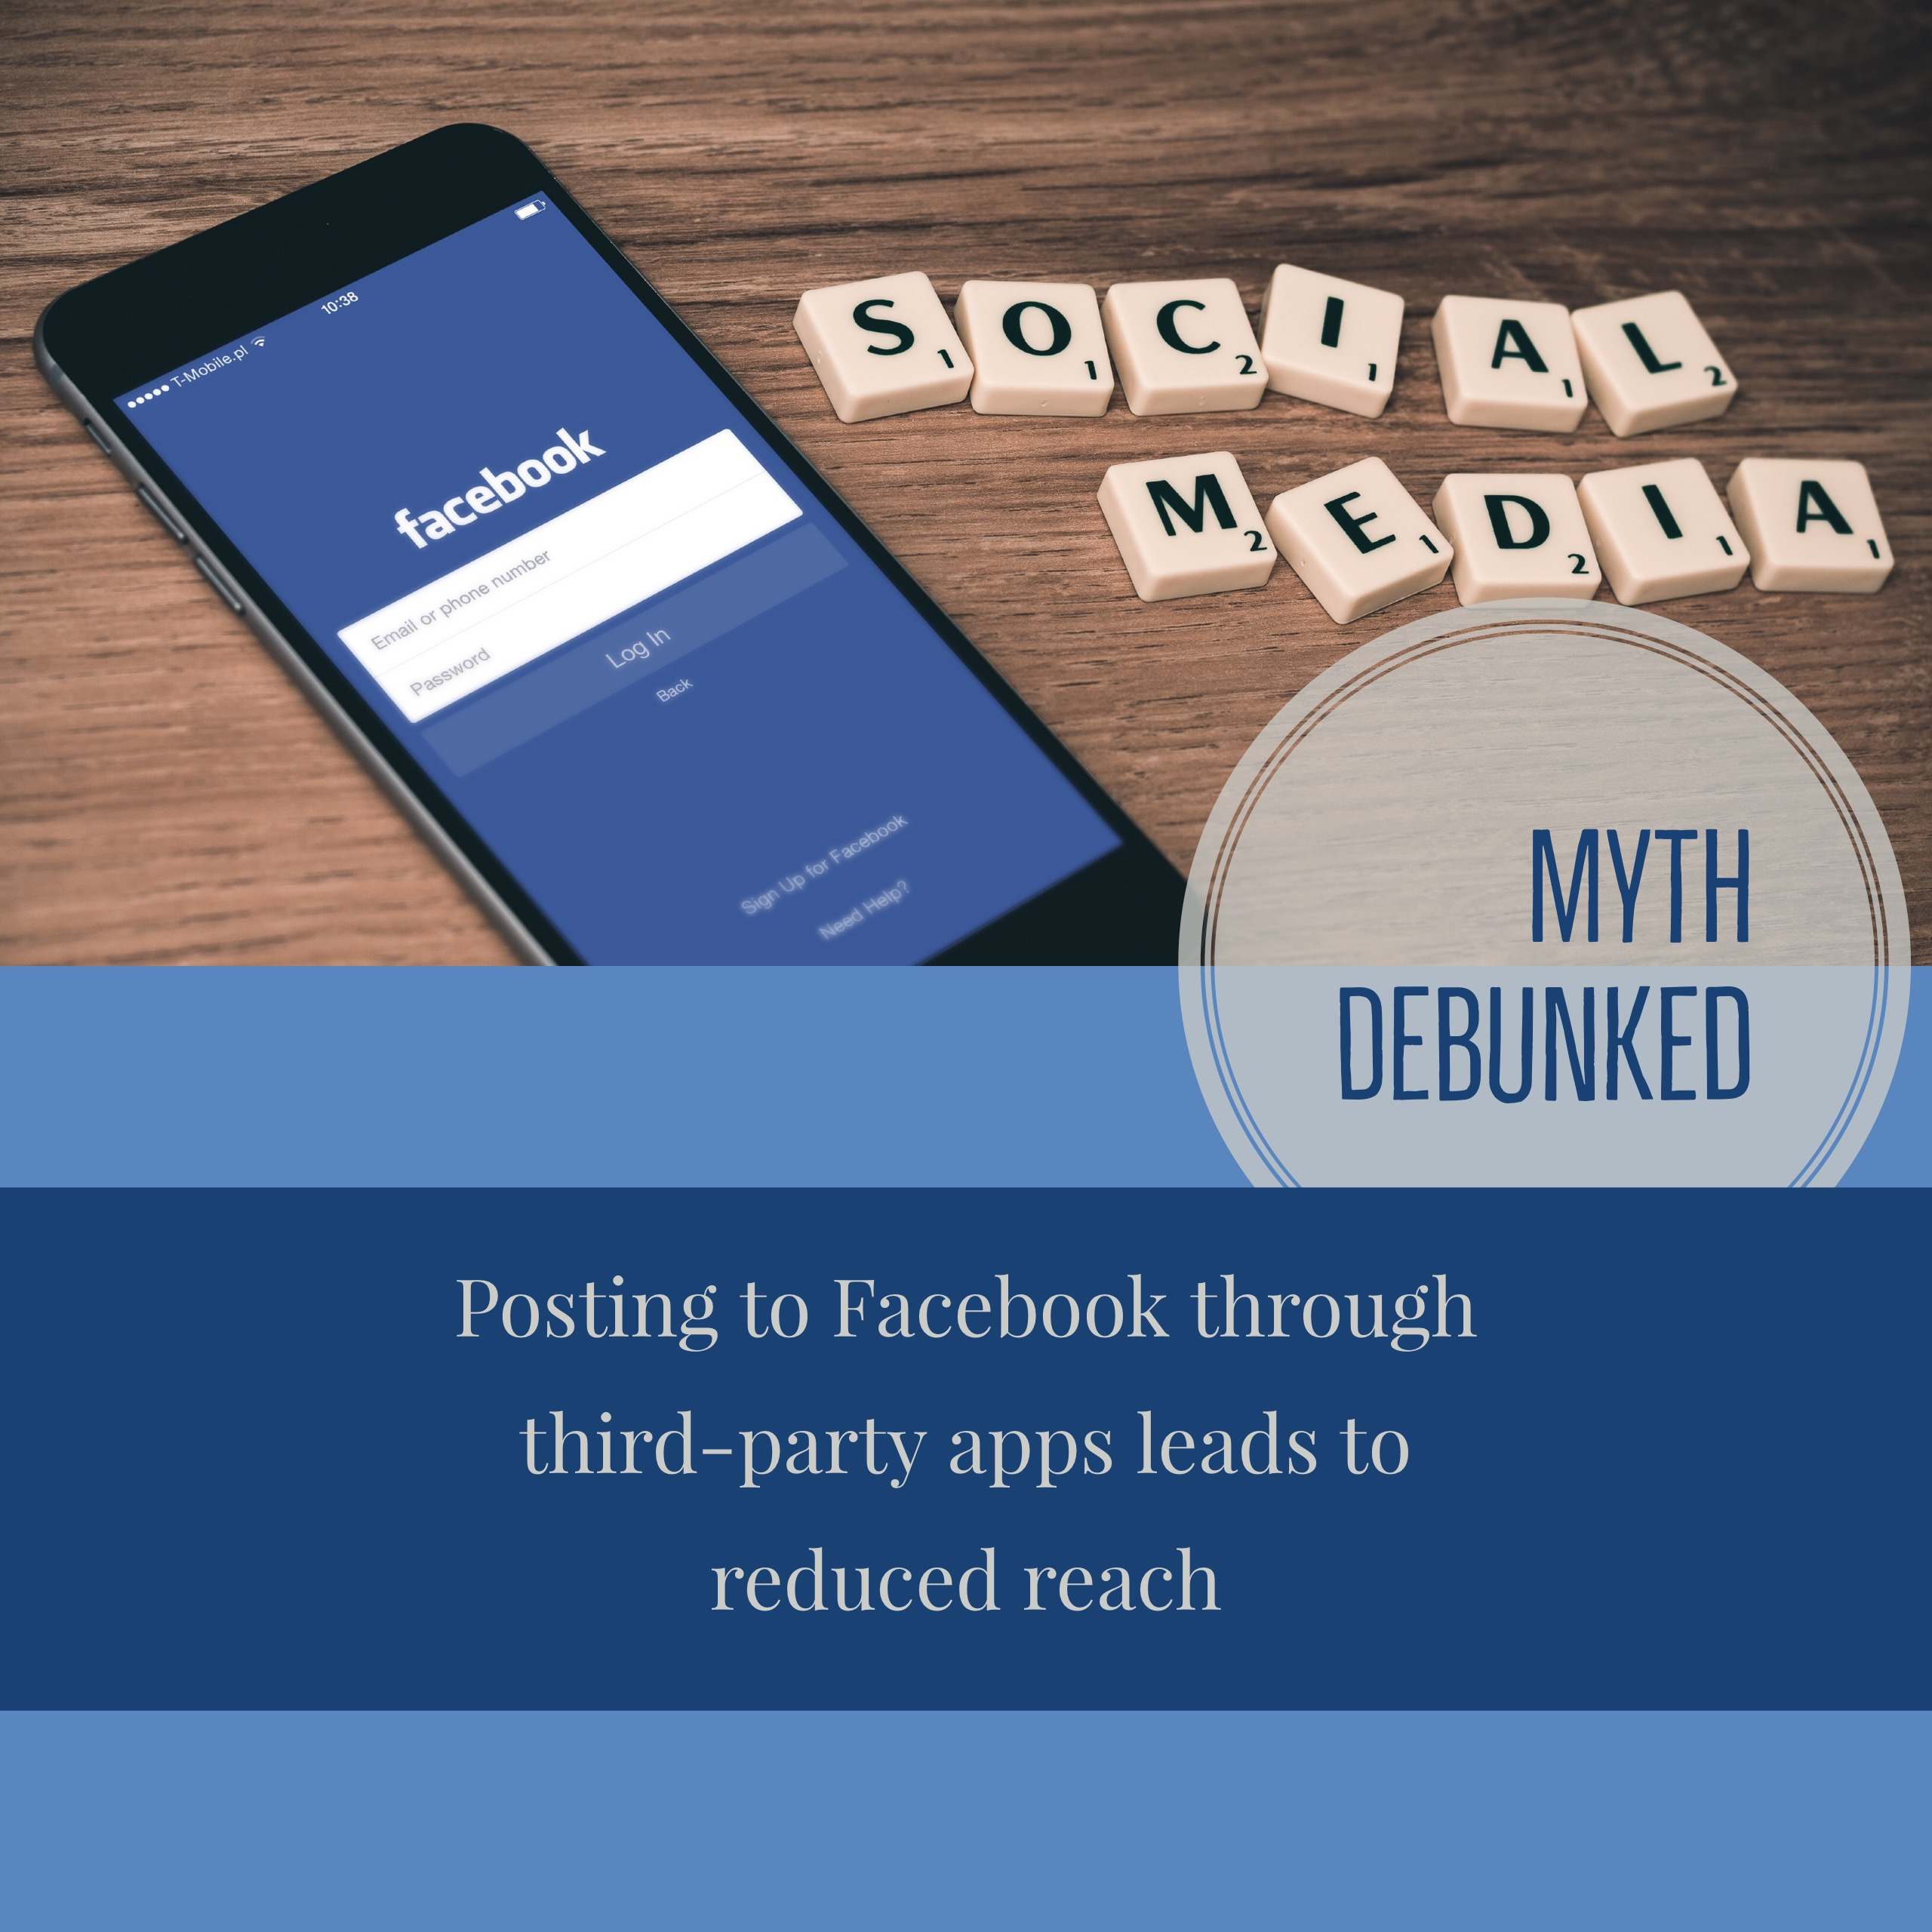 Posting to Facebook through third-party apps leads to reduced reach - myth debunked